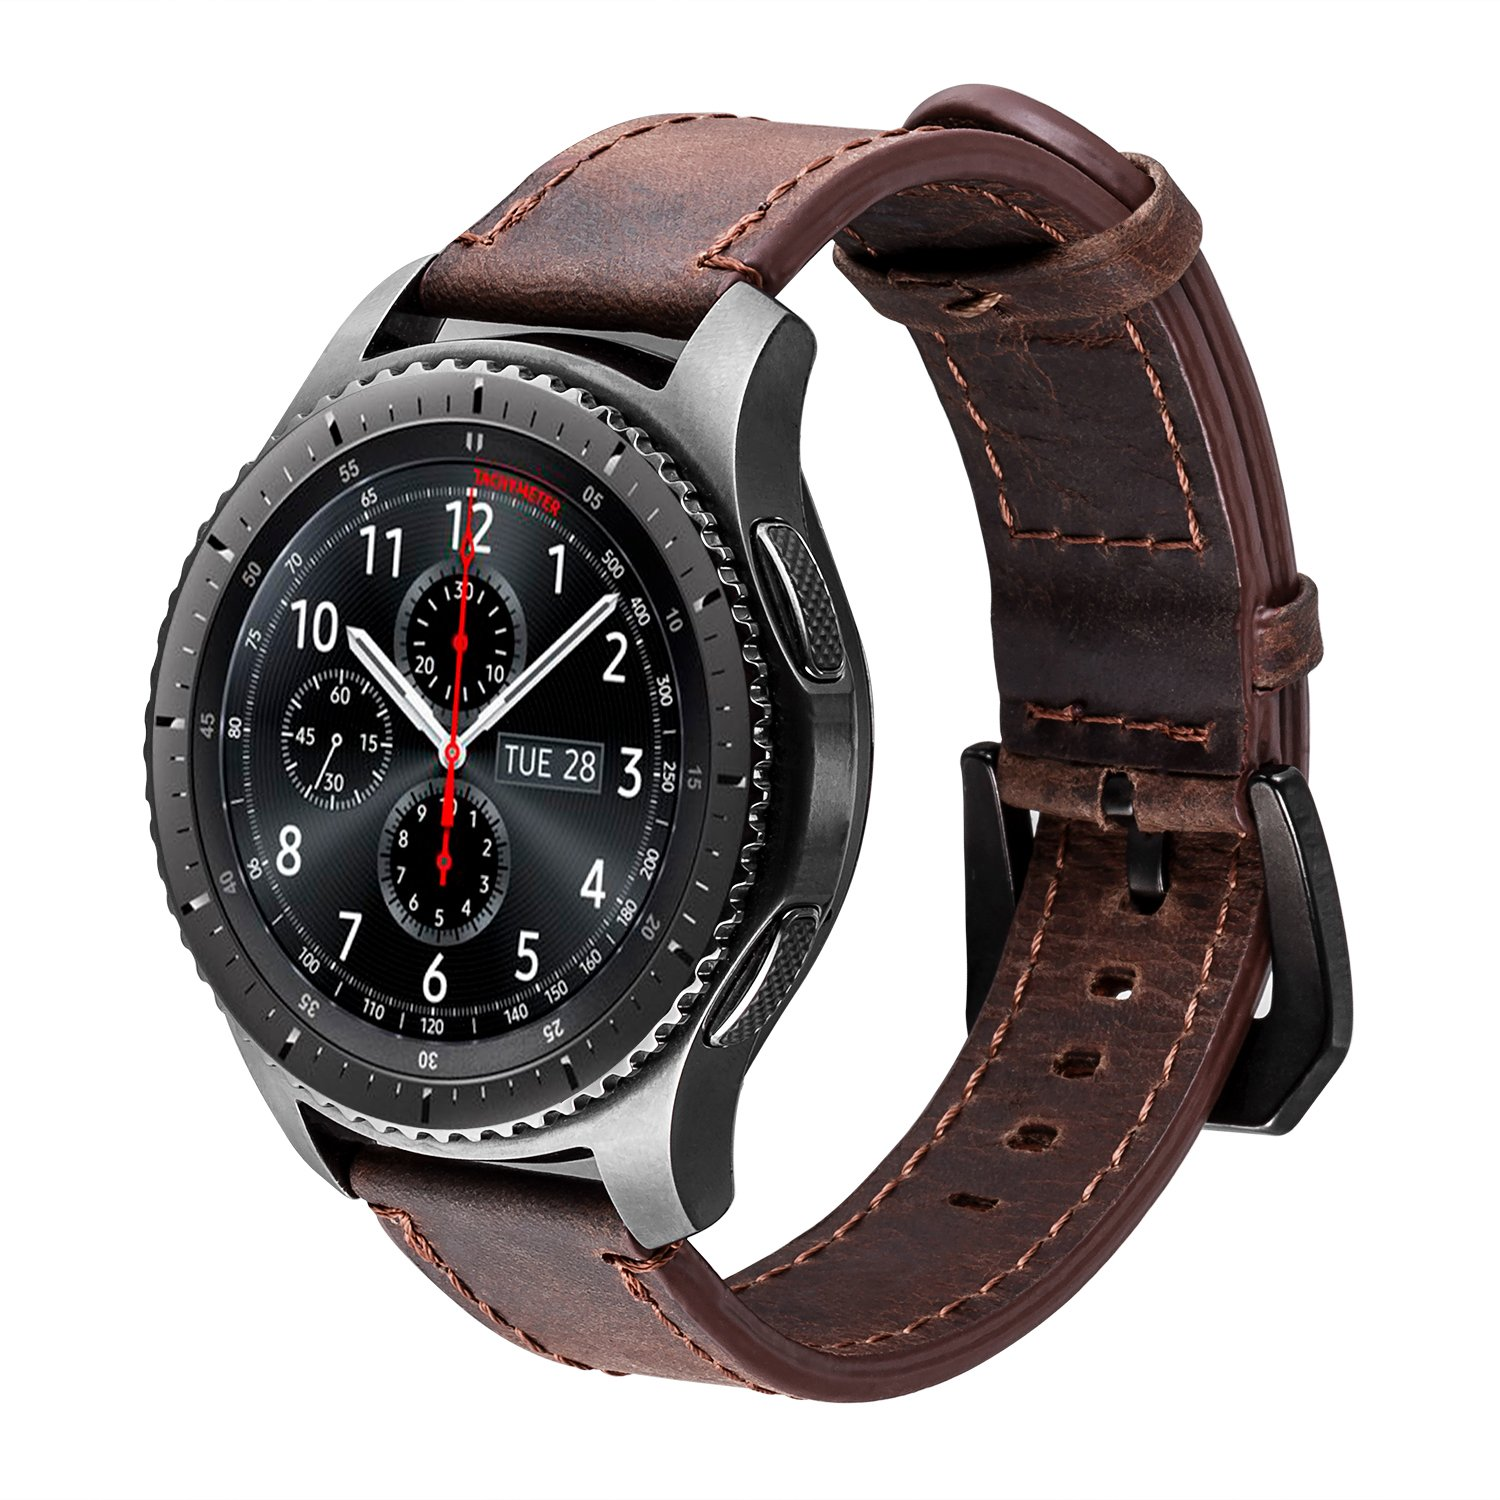 iBazal Gear S3 Watch Band, Gear S3 Frontier/Classic Band with Black Clasp, 22mm Genuine Leather Band Replacement Band for Samsung Gear S3 Frontier/Classic SM-R760 - Coffee + Black Clasp